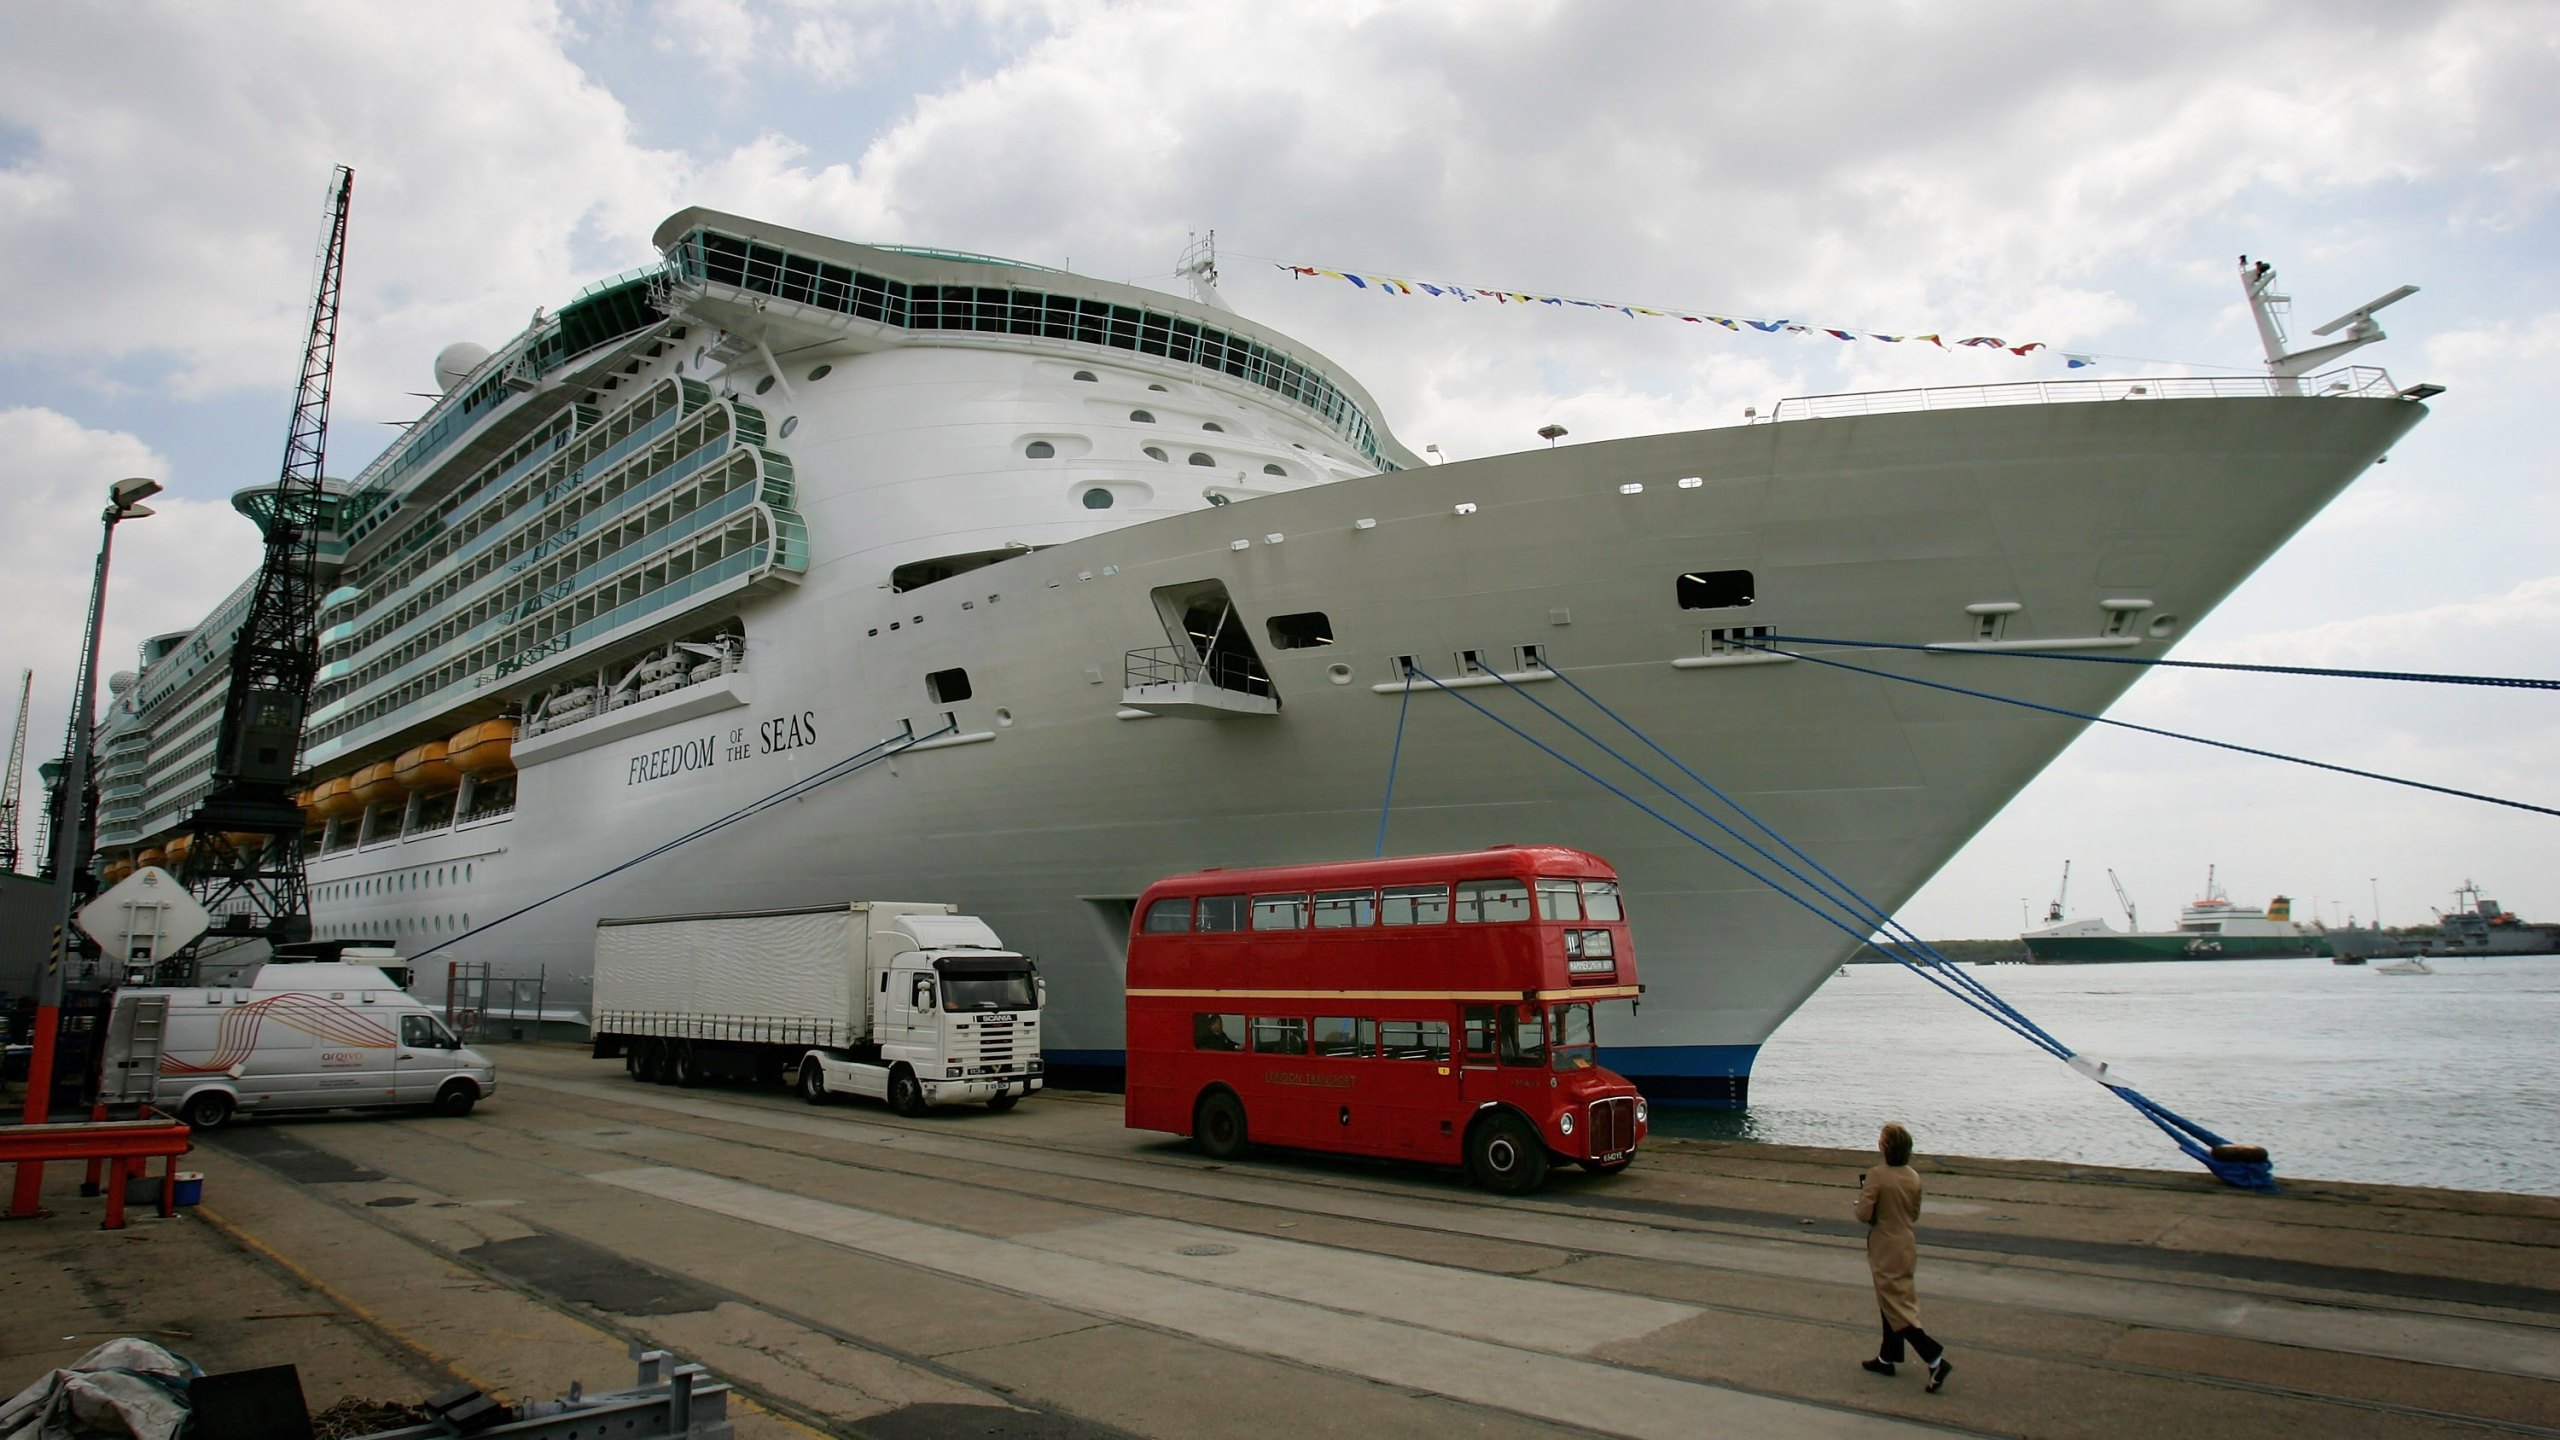 """The """"Freedom of the Seas"""", the world's largest cruise ship at the time, sits docked on April 29, 2006, in Southampton, England. (Credit: Daniel Berehulak/Getty Images)"""